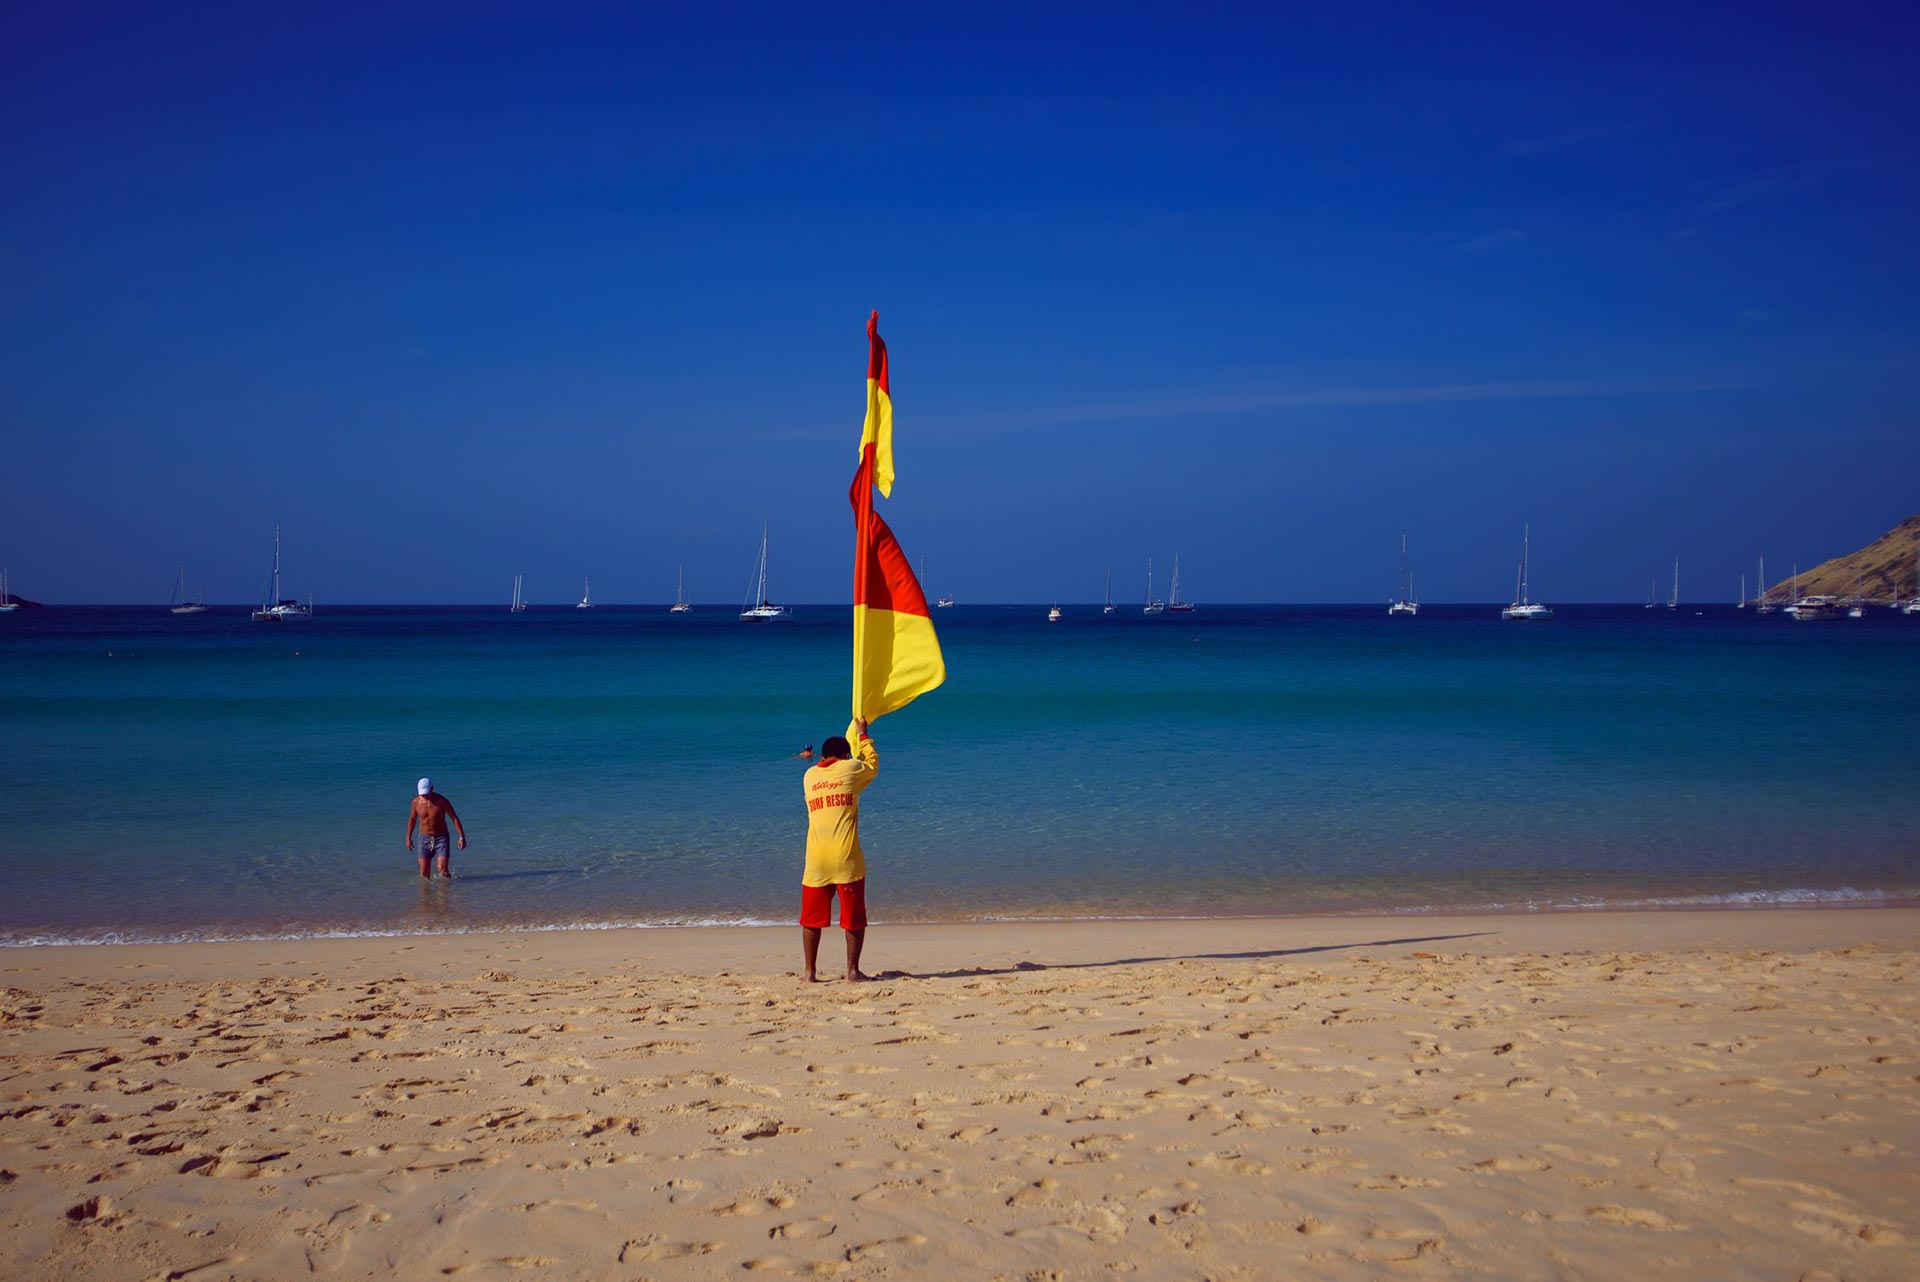 flag lifeguards beach safety sea